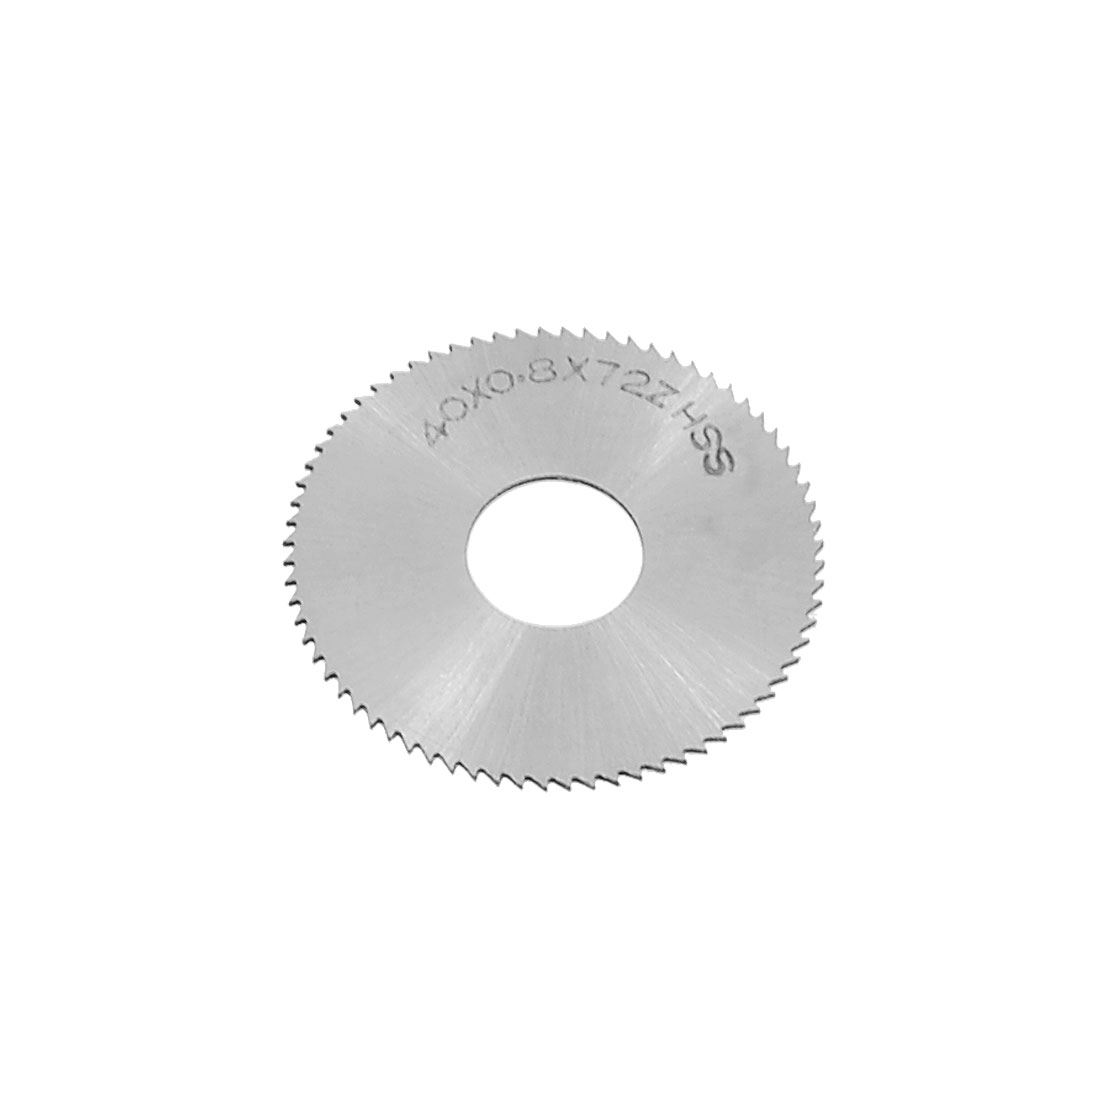 HSS Toothed 40mm x 0.8mm x 13mm 72T Circle Slitting Saw